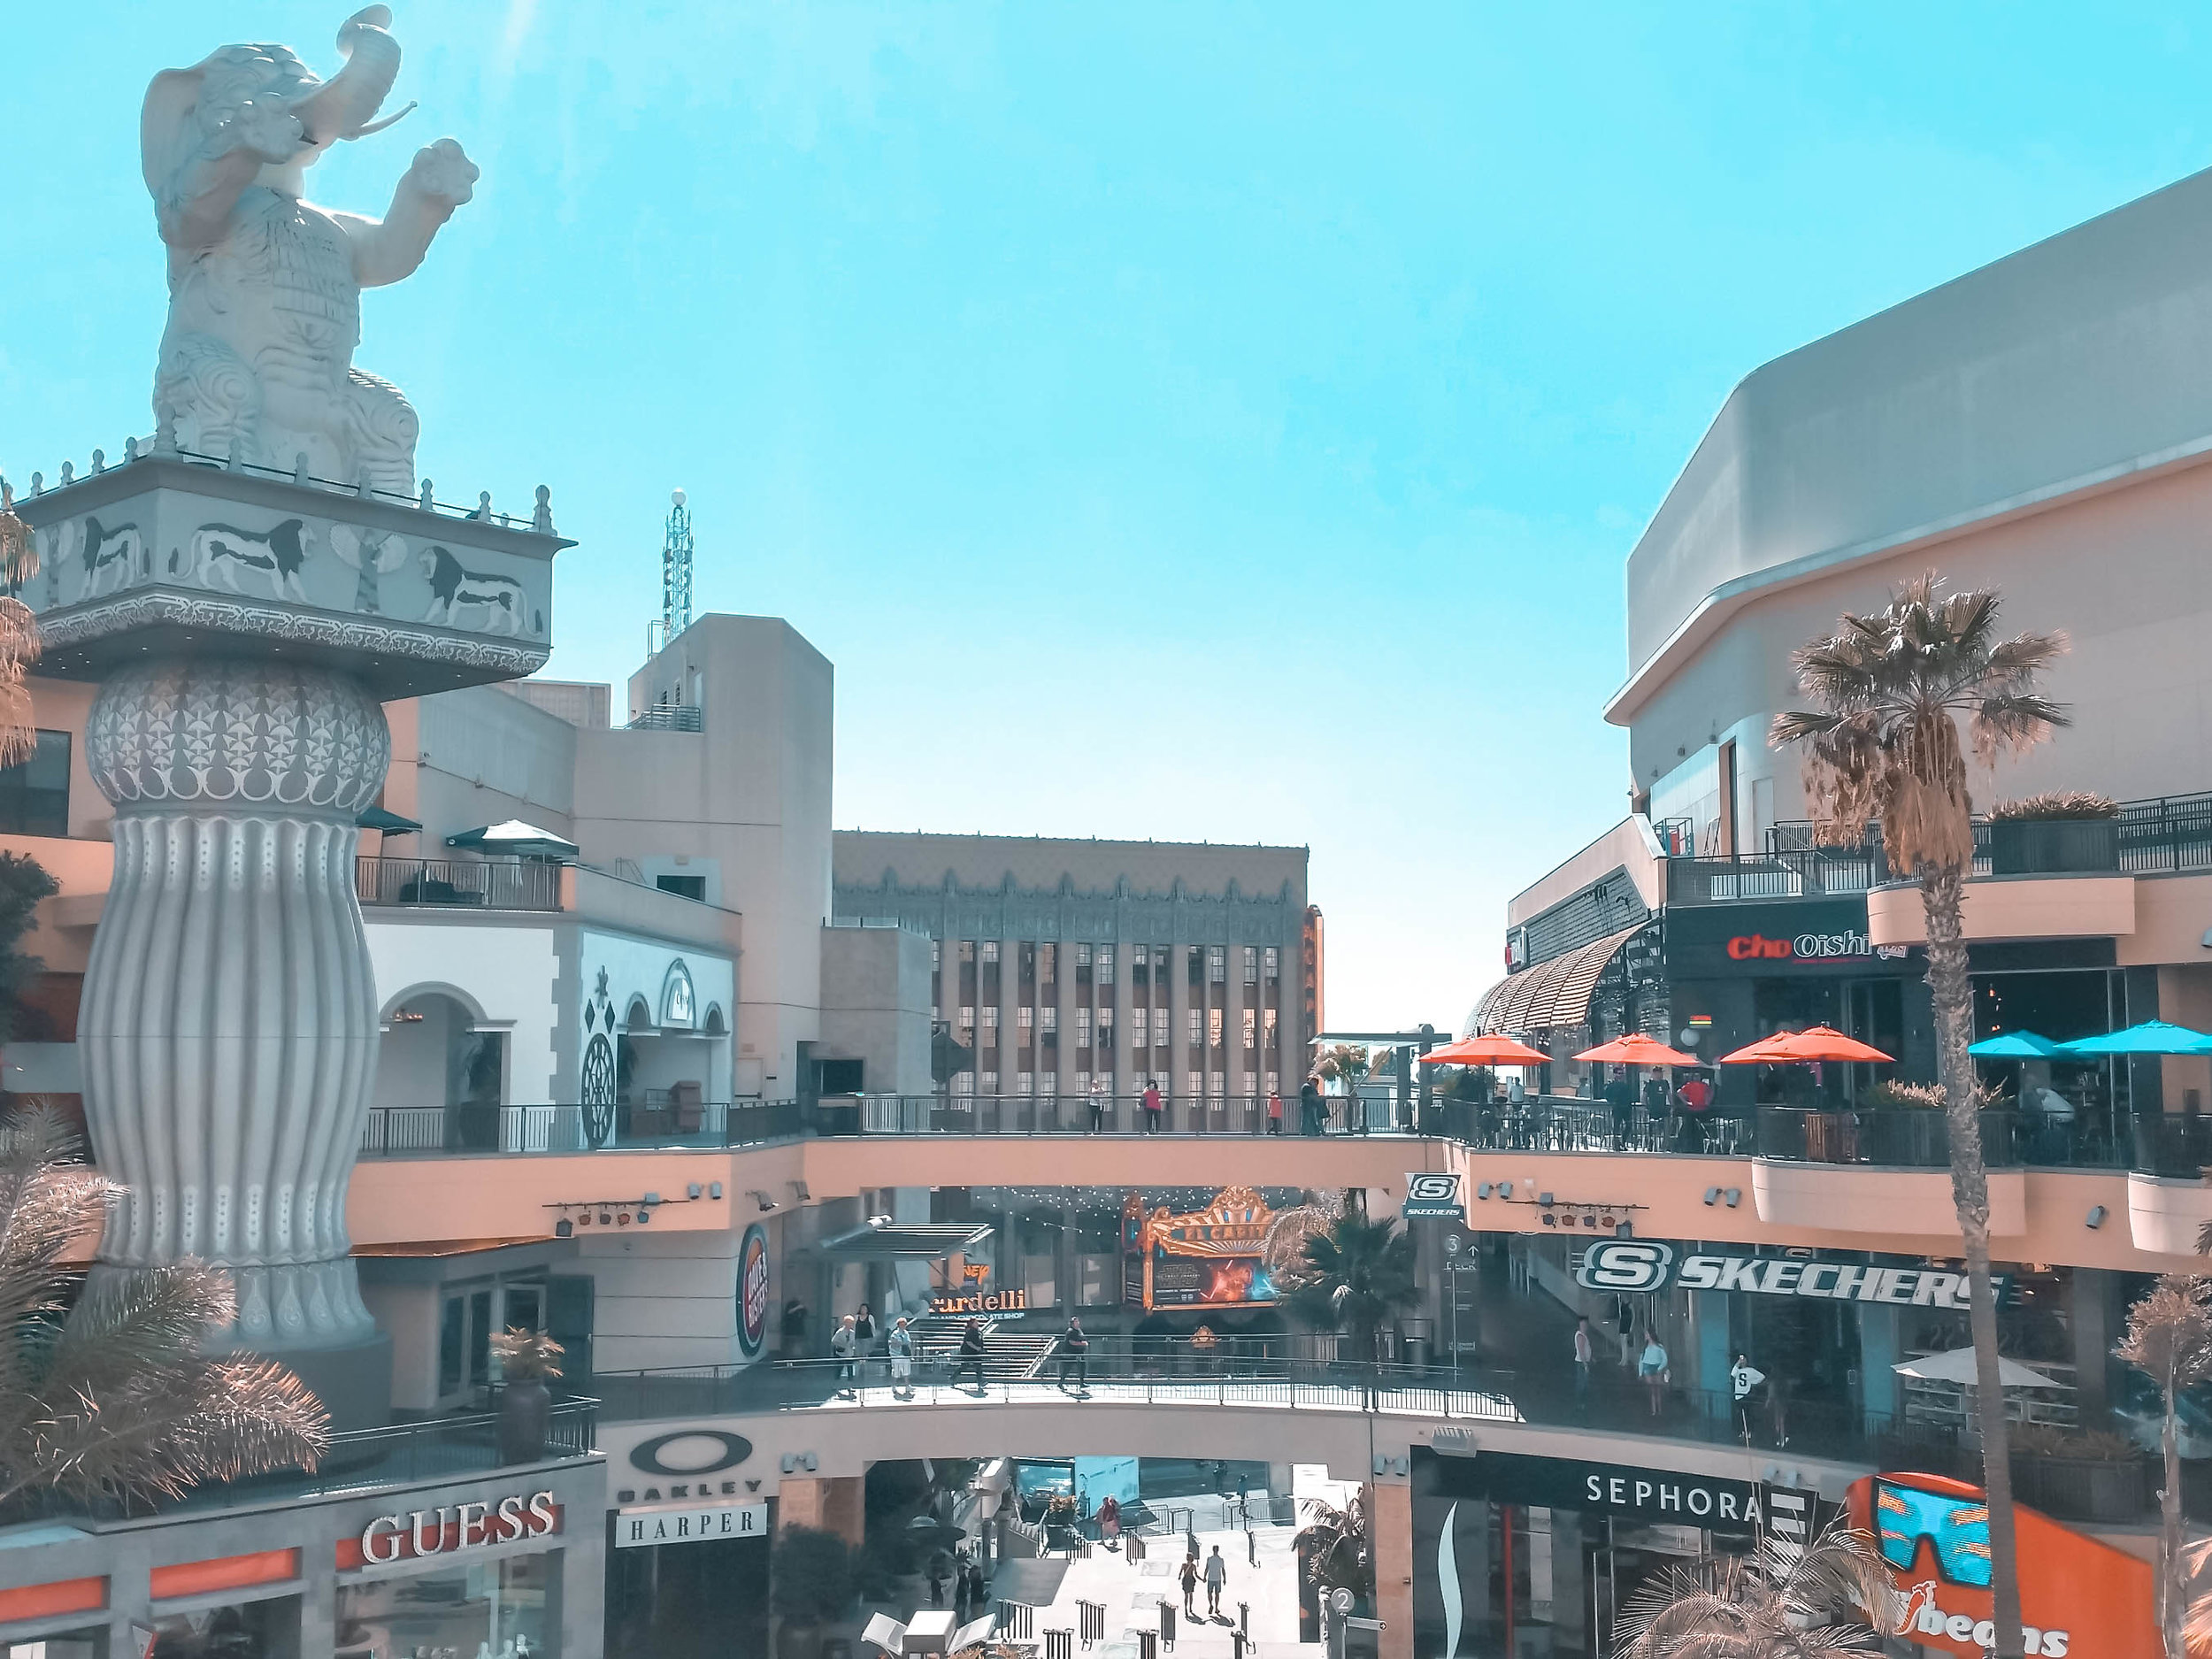 Exploring Hollywood and Highland Shopping Centre